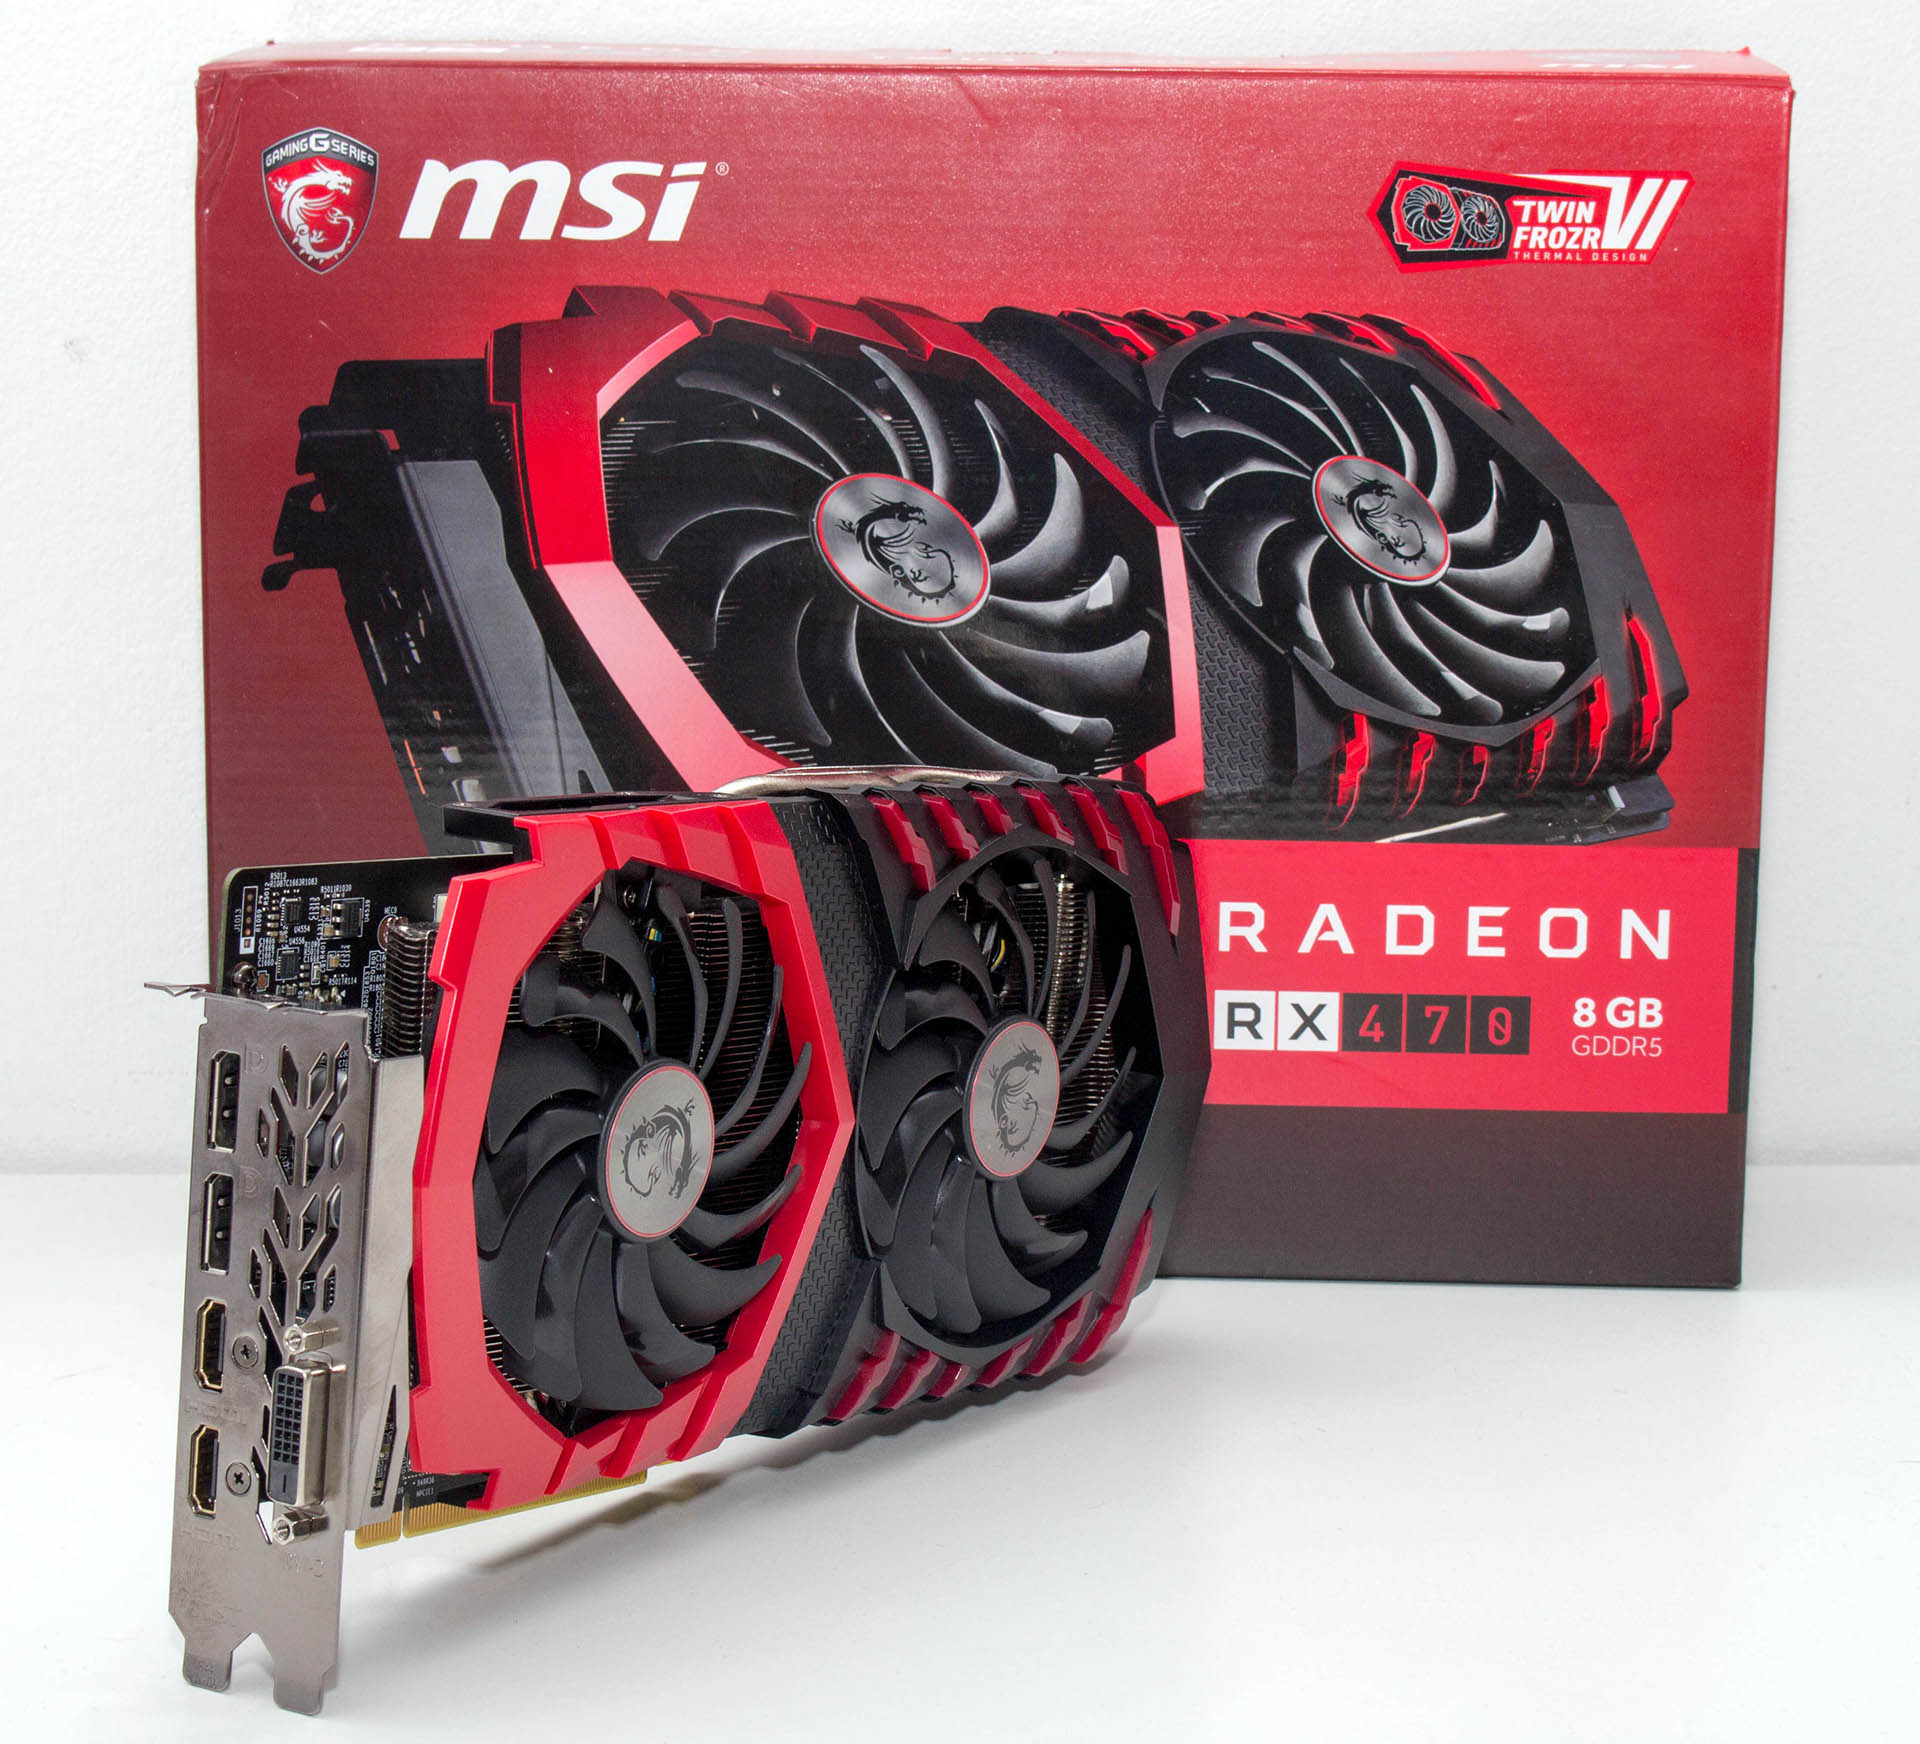 MSI Radeon RX470 8GB Gaming X test